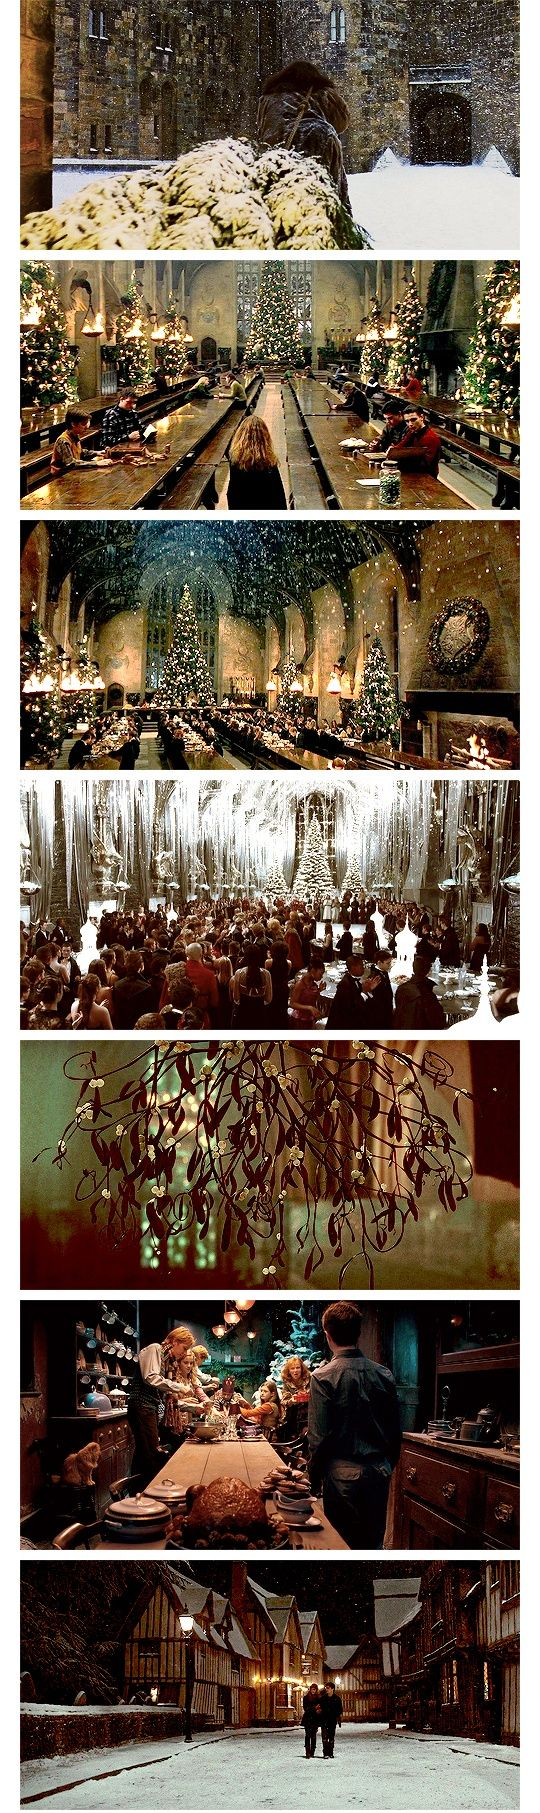 I just love the Christmas scenes in Harry Potter movies. It makes me wish it was Christmas already! ♥